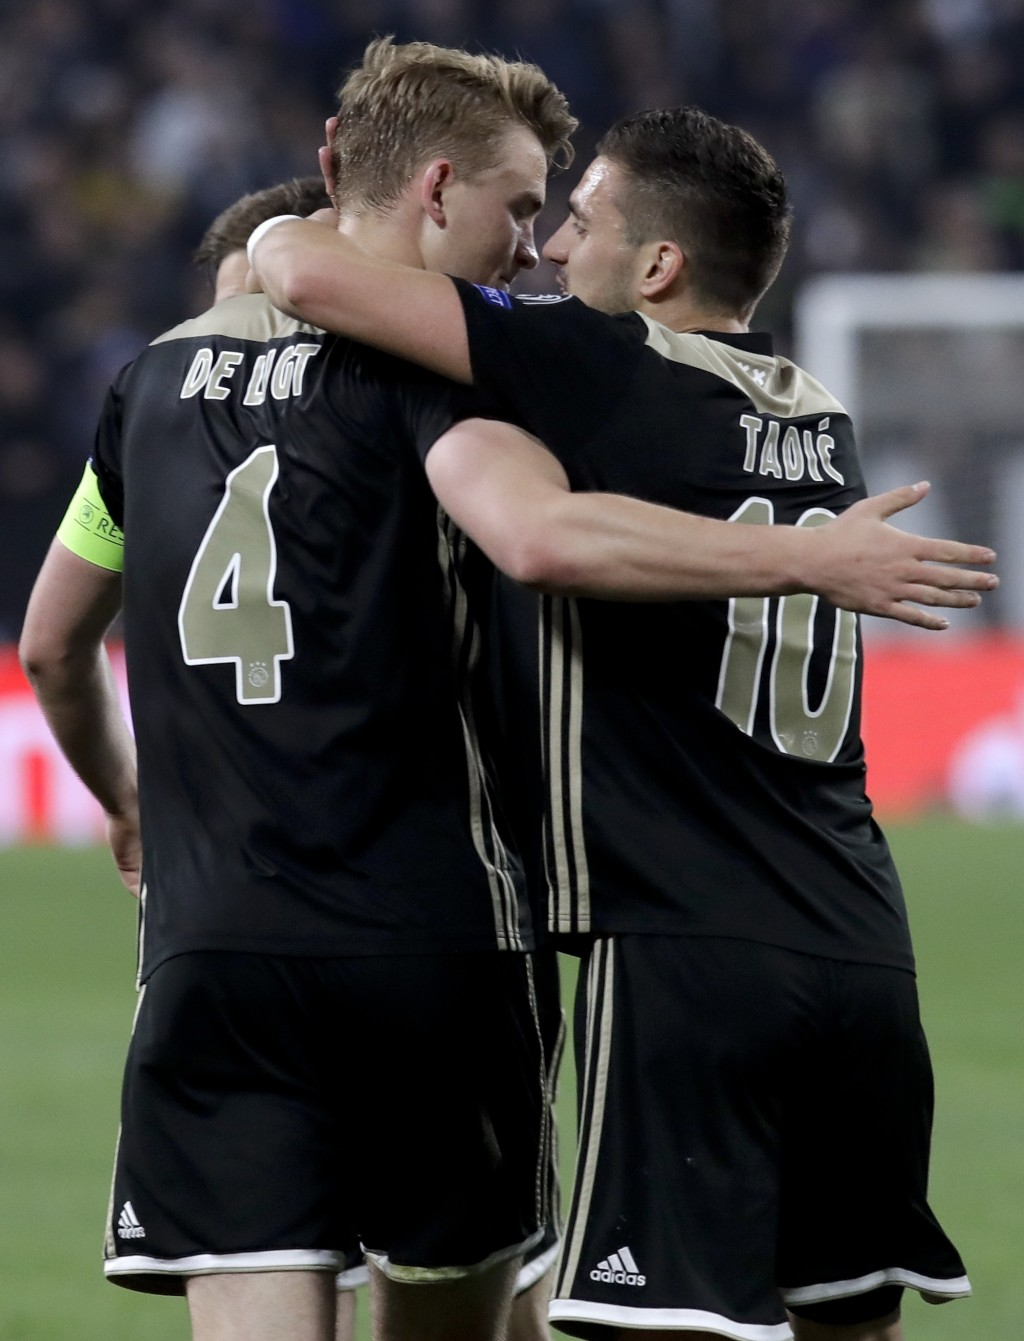 Ajax's Matthijs de Ligt, left, celebrates with his teammate Dusan Tadic after scoring his side's second goal during the Champions League, quarterfinal